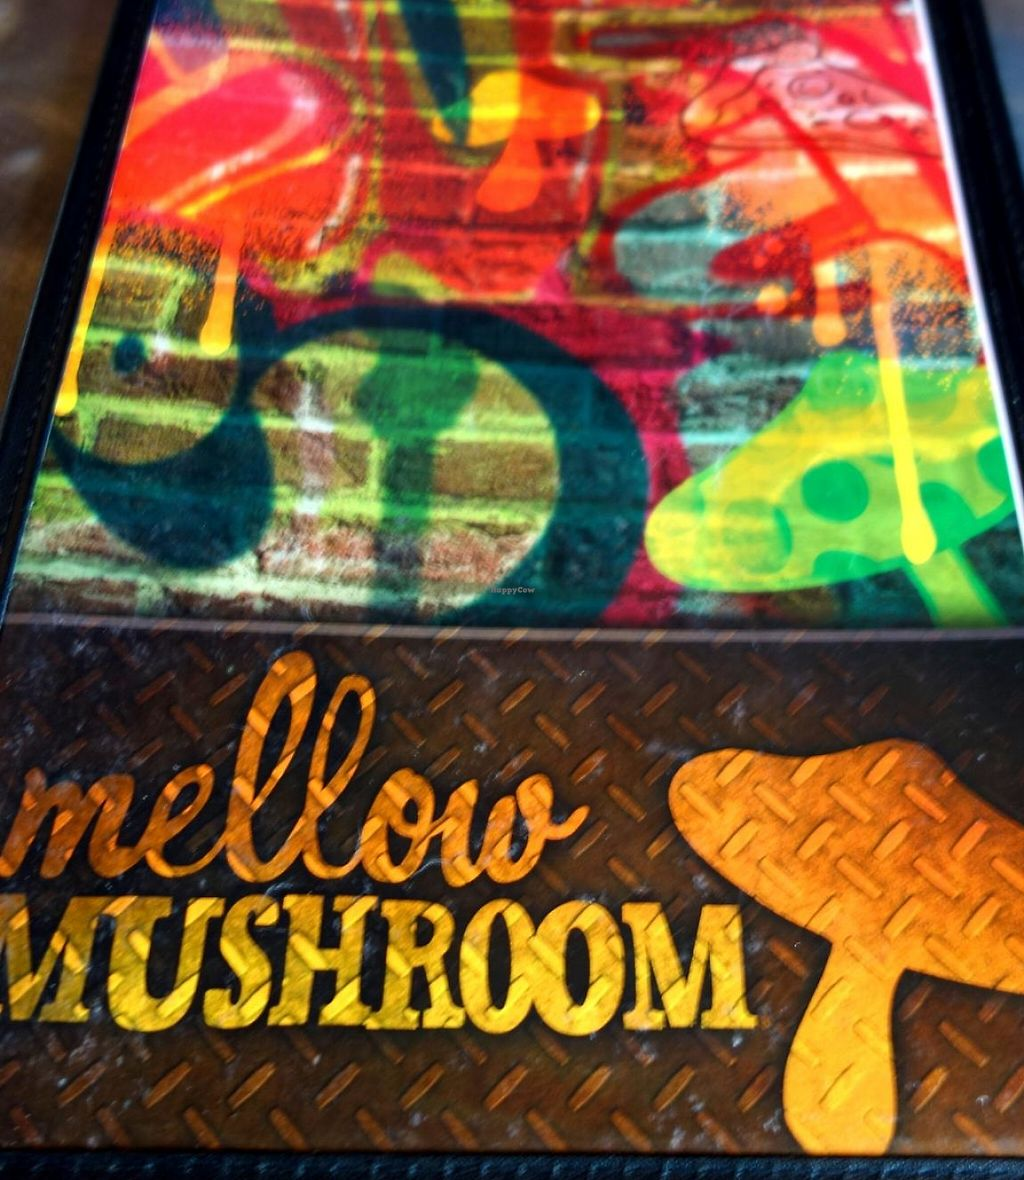 """Photo of Mellow Mushroom  by <a href=""""/members/profile/Gudrun"""">Gudrun</a> <br/>the menu <br/> June 13, 2015  - <a href='/contact/abuse/image/23857/200795'>Report</a>"""